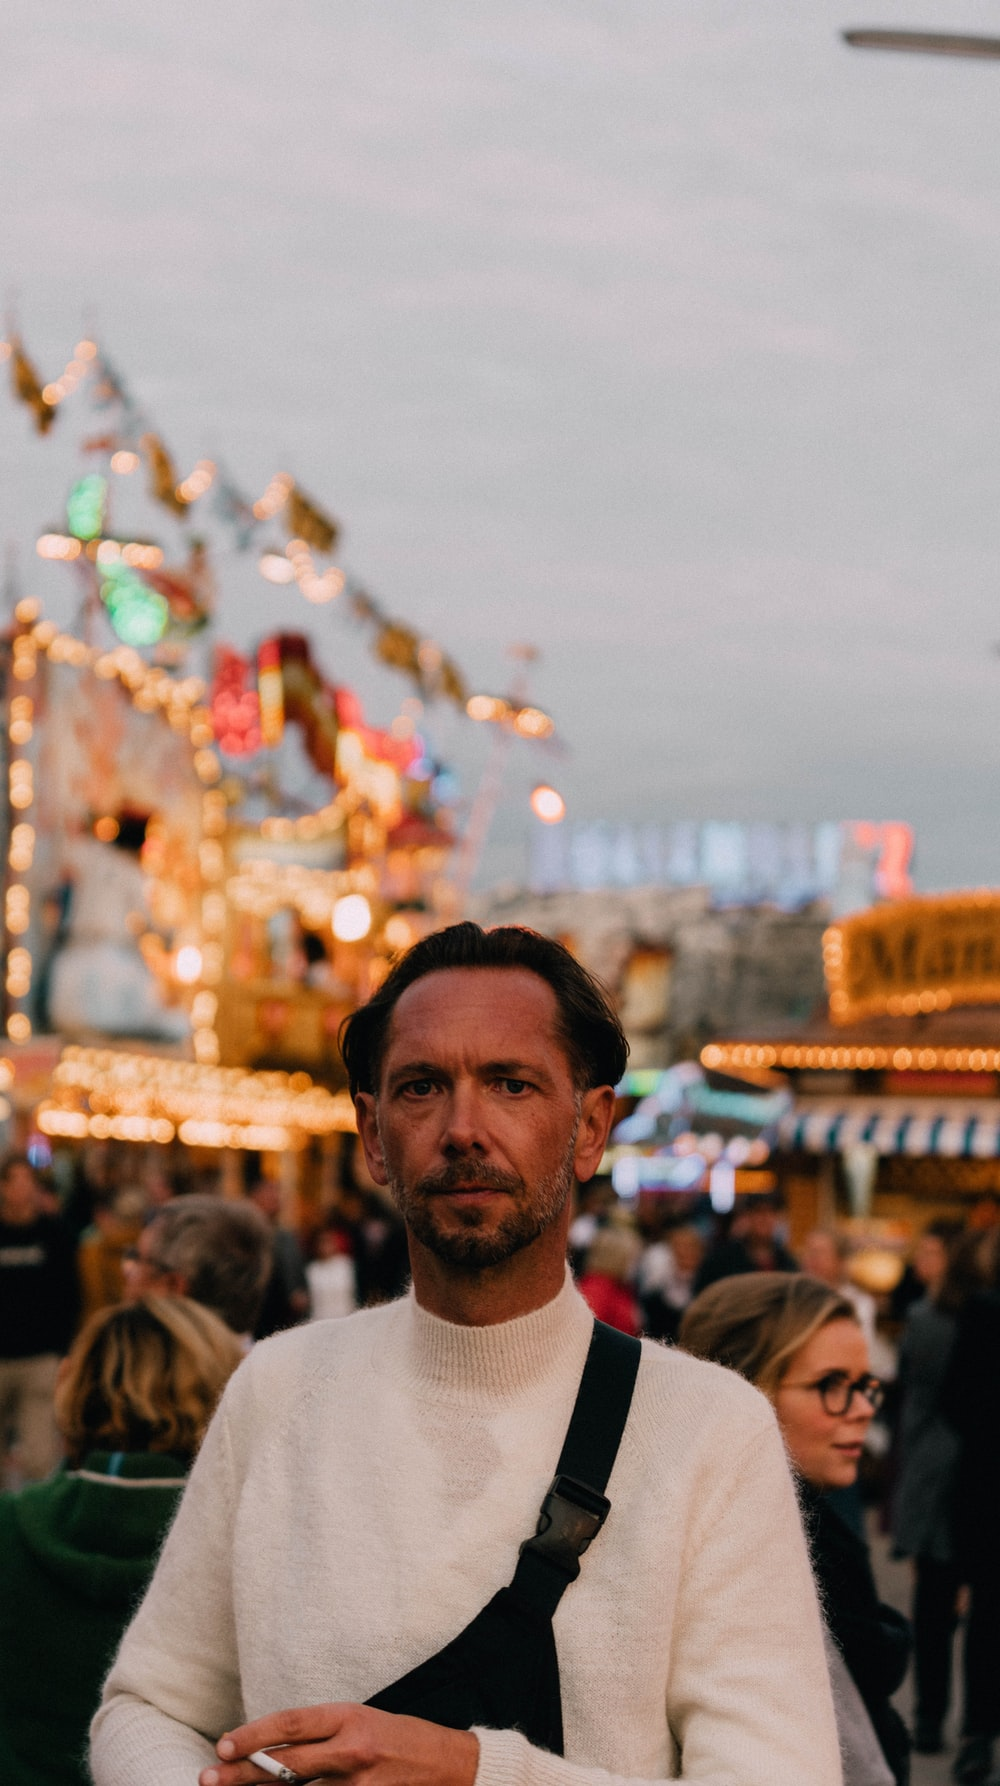 man in white crew neck shirt standing near people during daytime